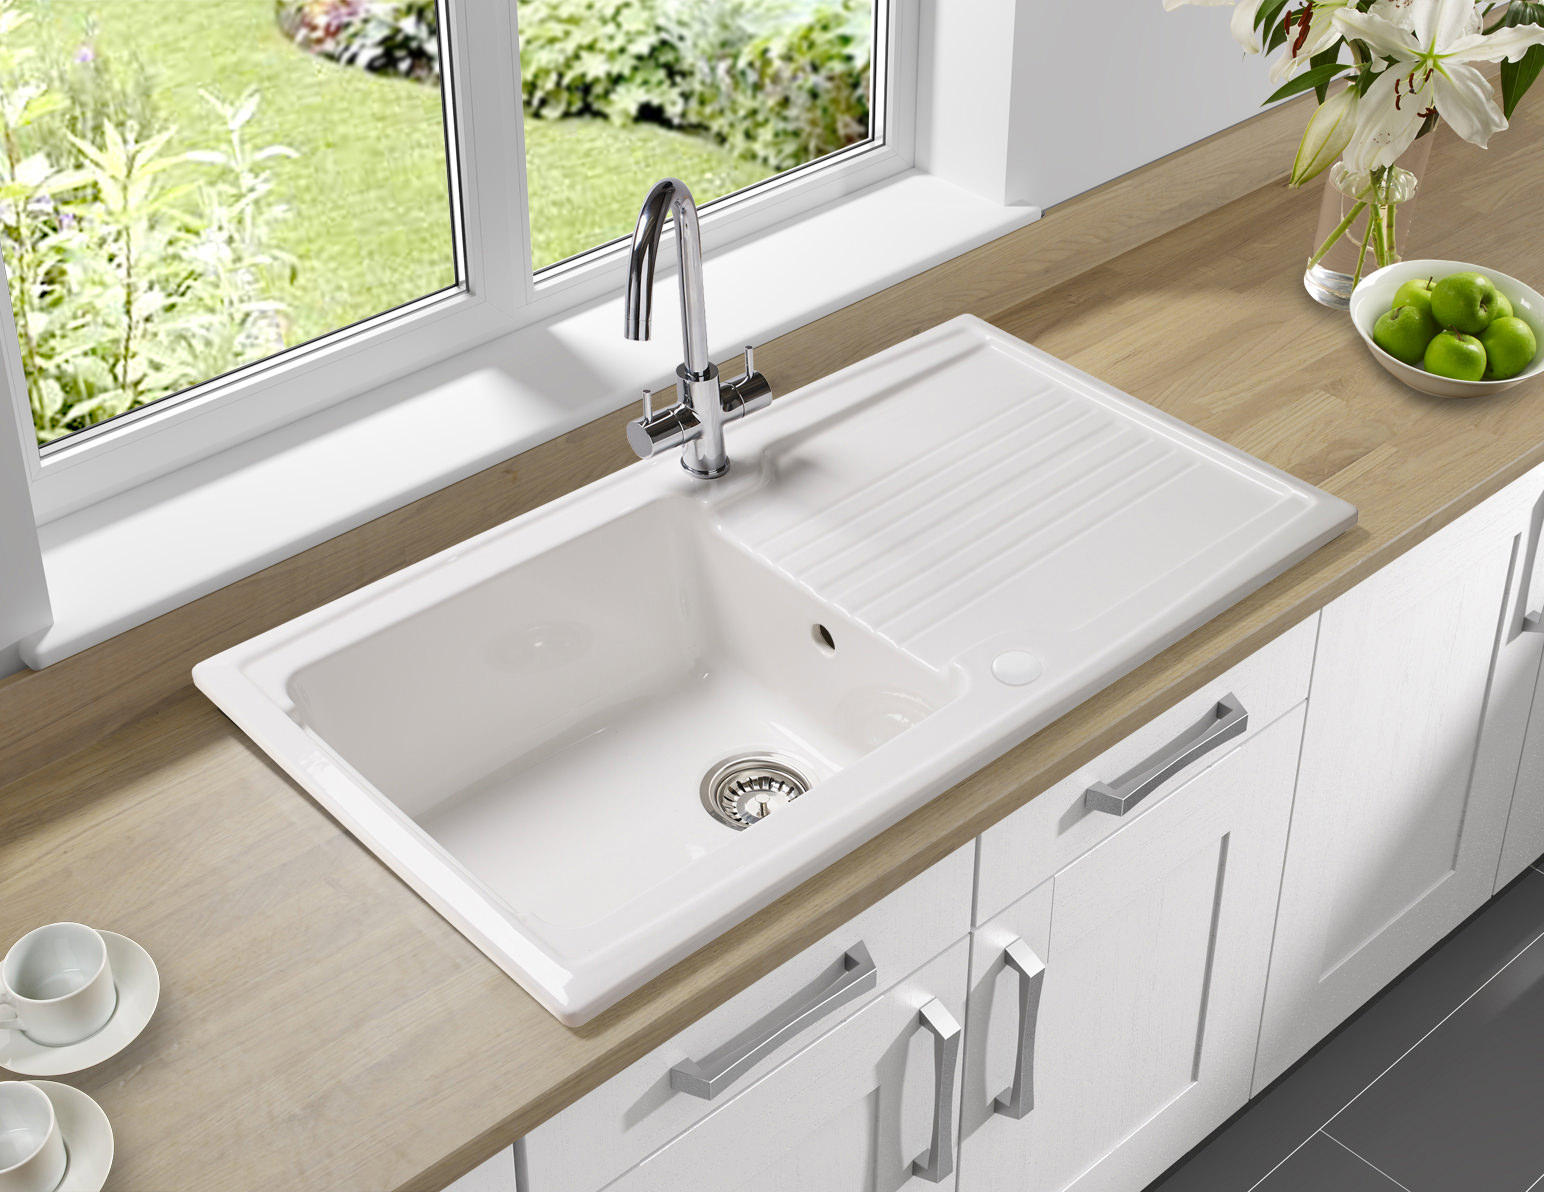 Inset Ceramic Kitchen Sink